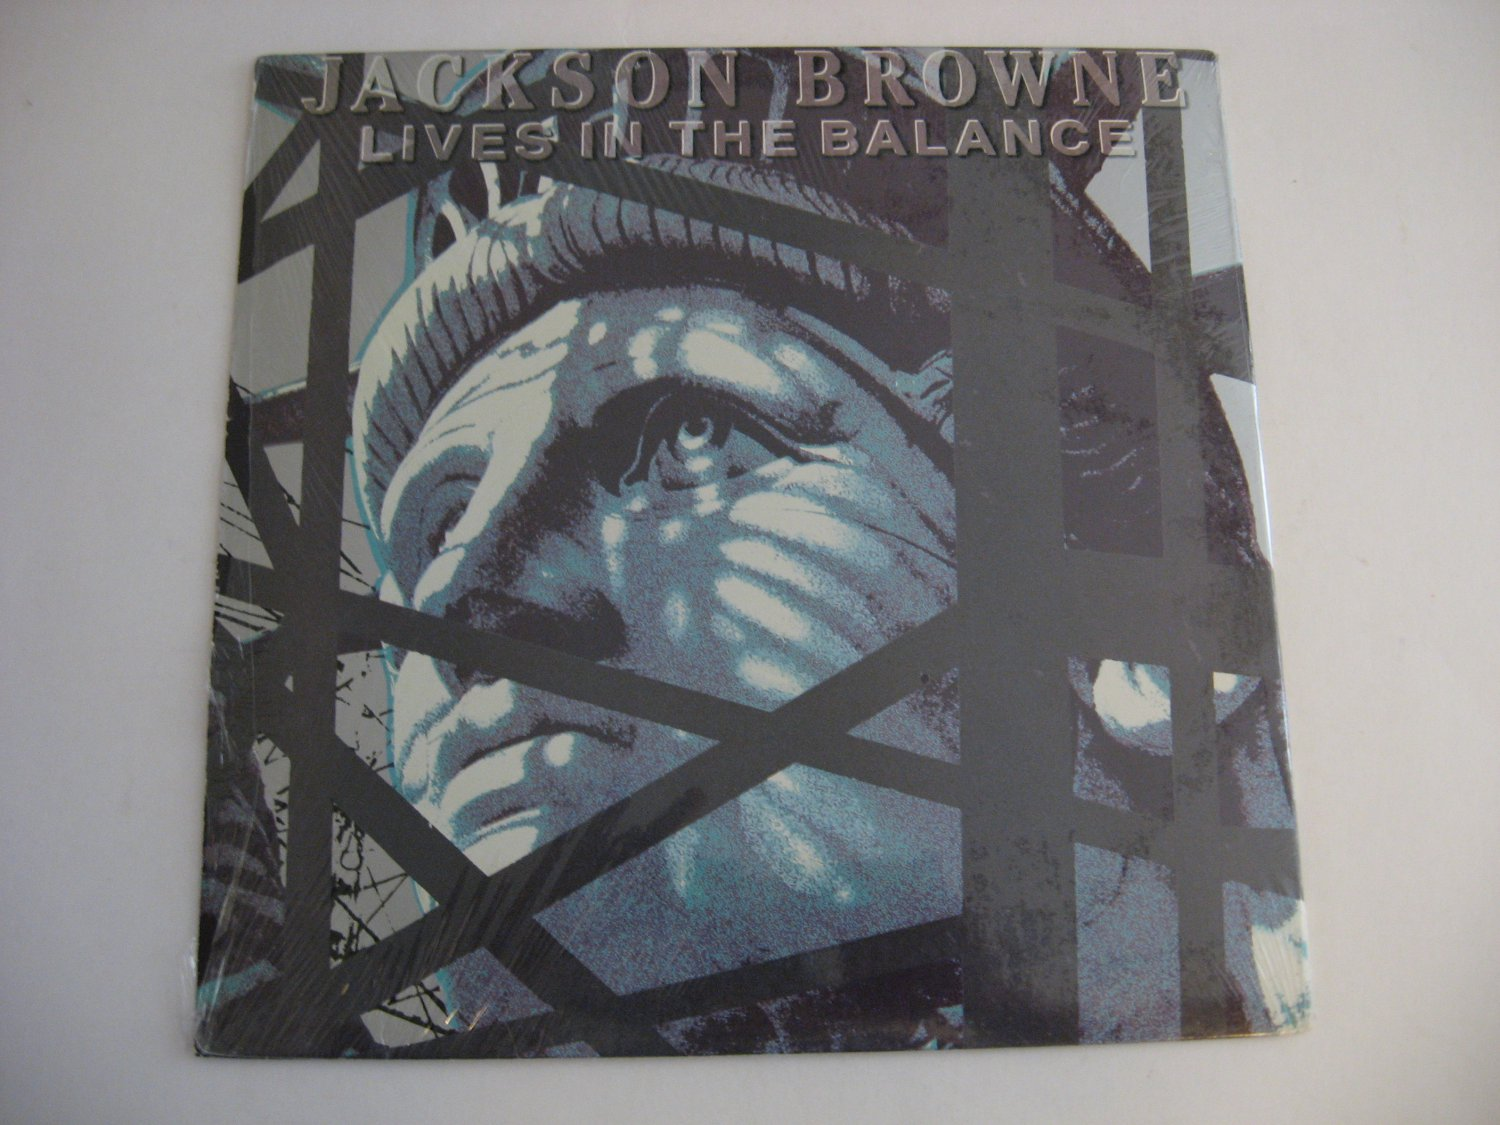 Jackson Browne - Lives In The Balance - Circa 1986